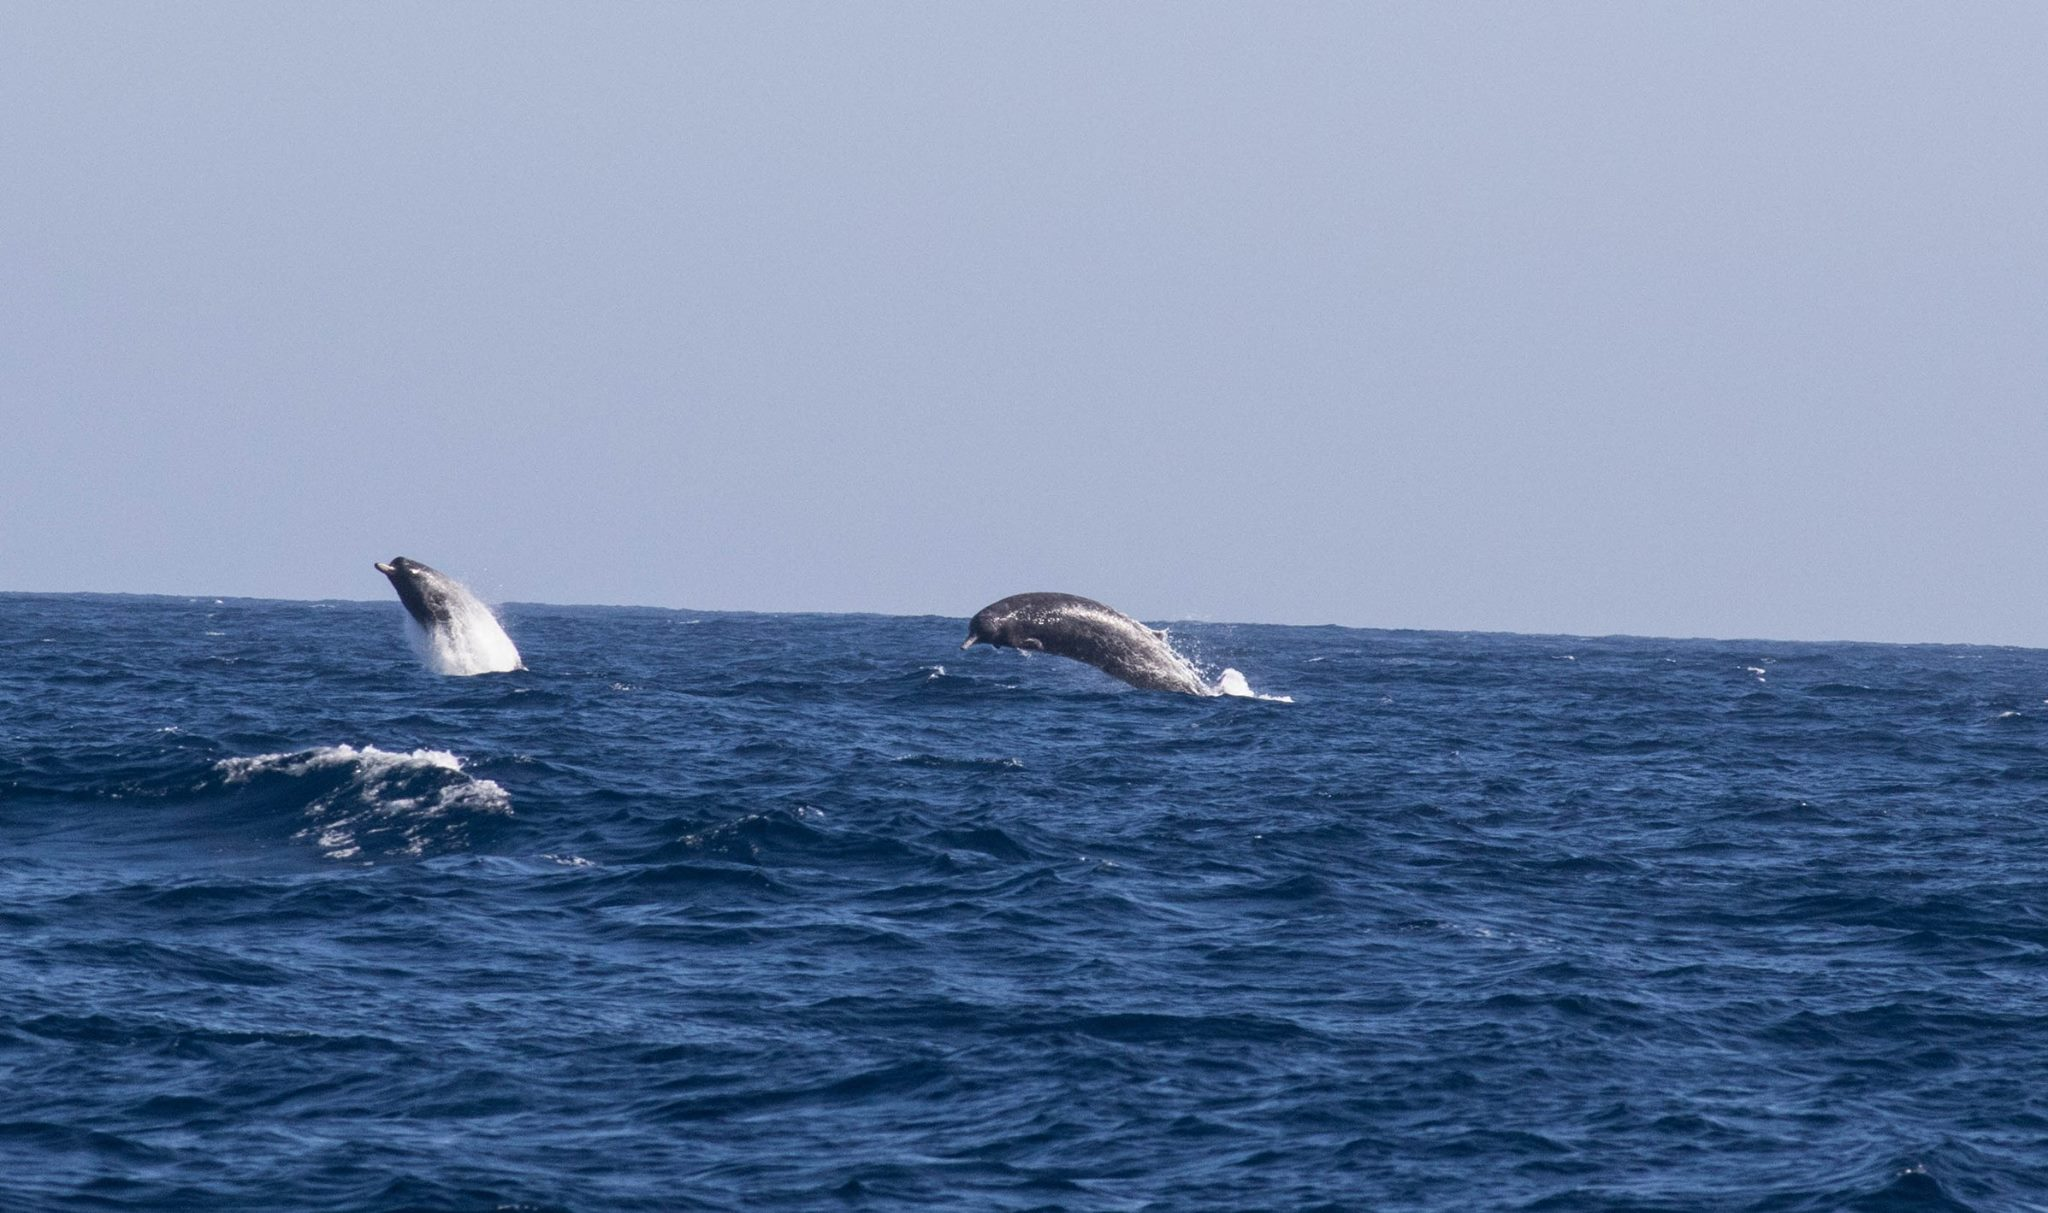 Beaked_whales_near_Bermagui___Geelong_Star_10jan2016_2.jpg